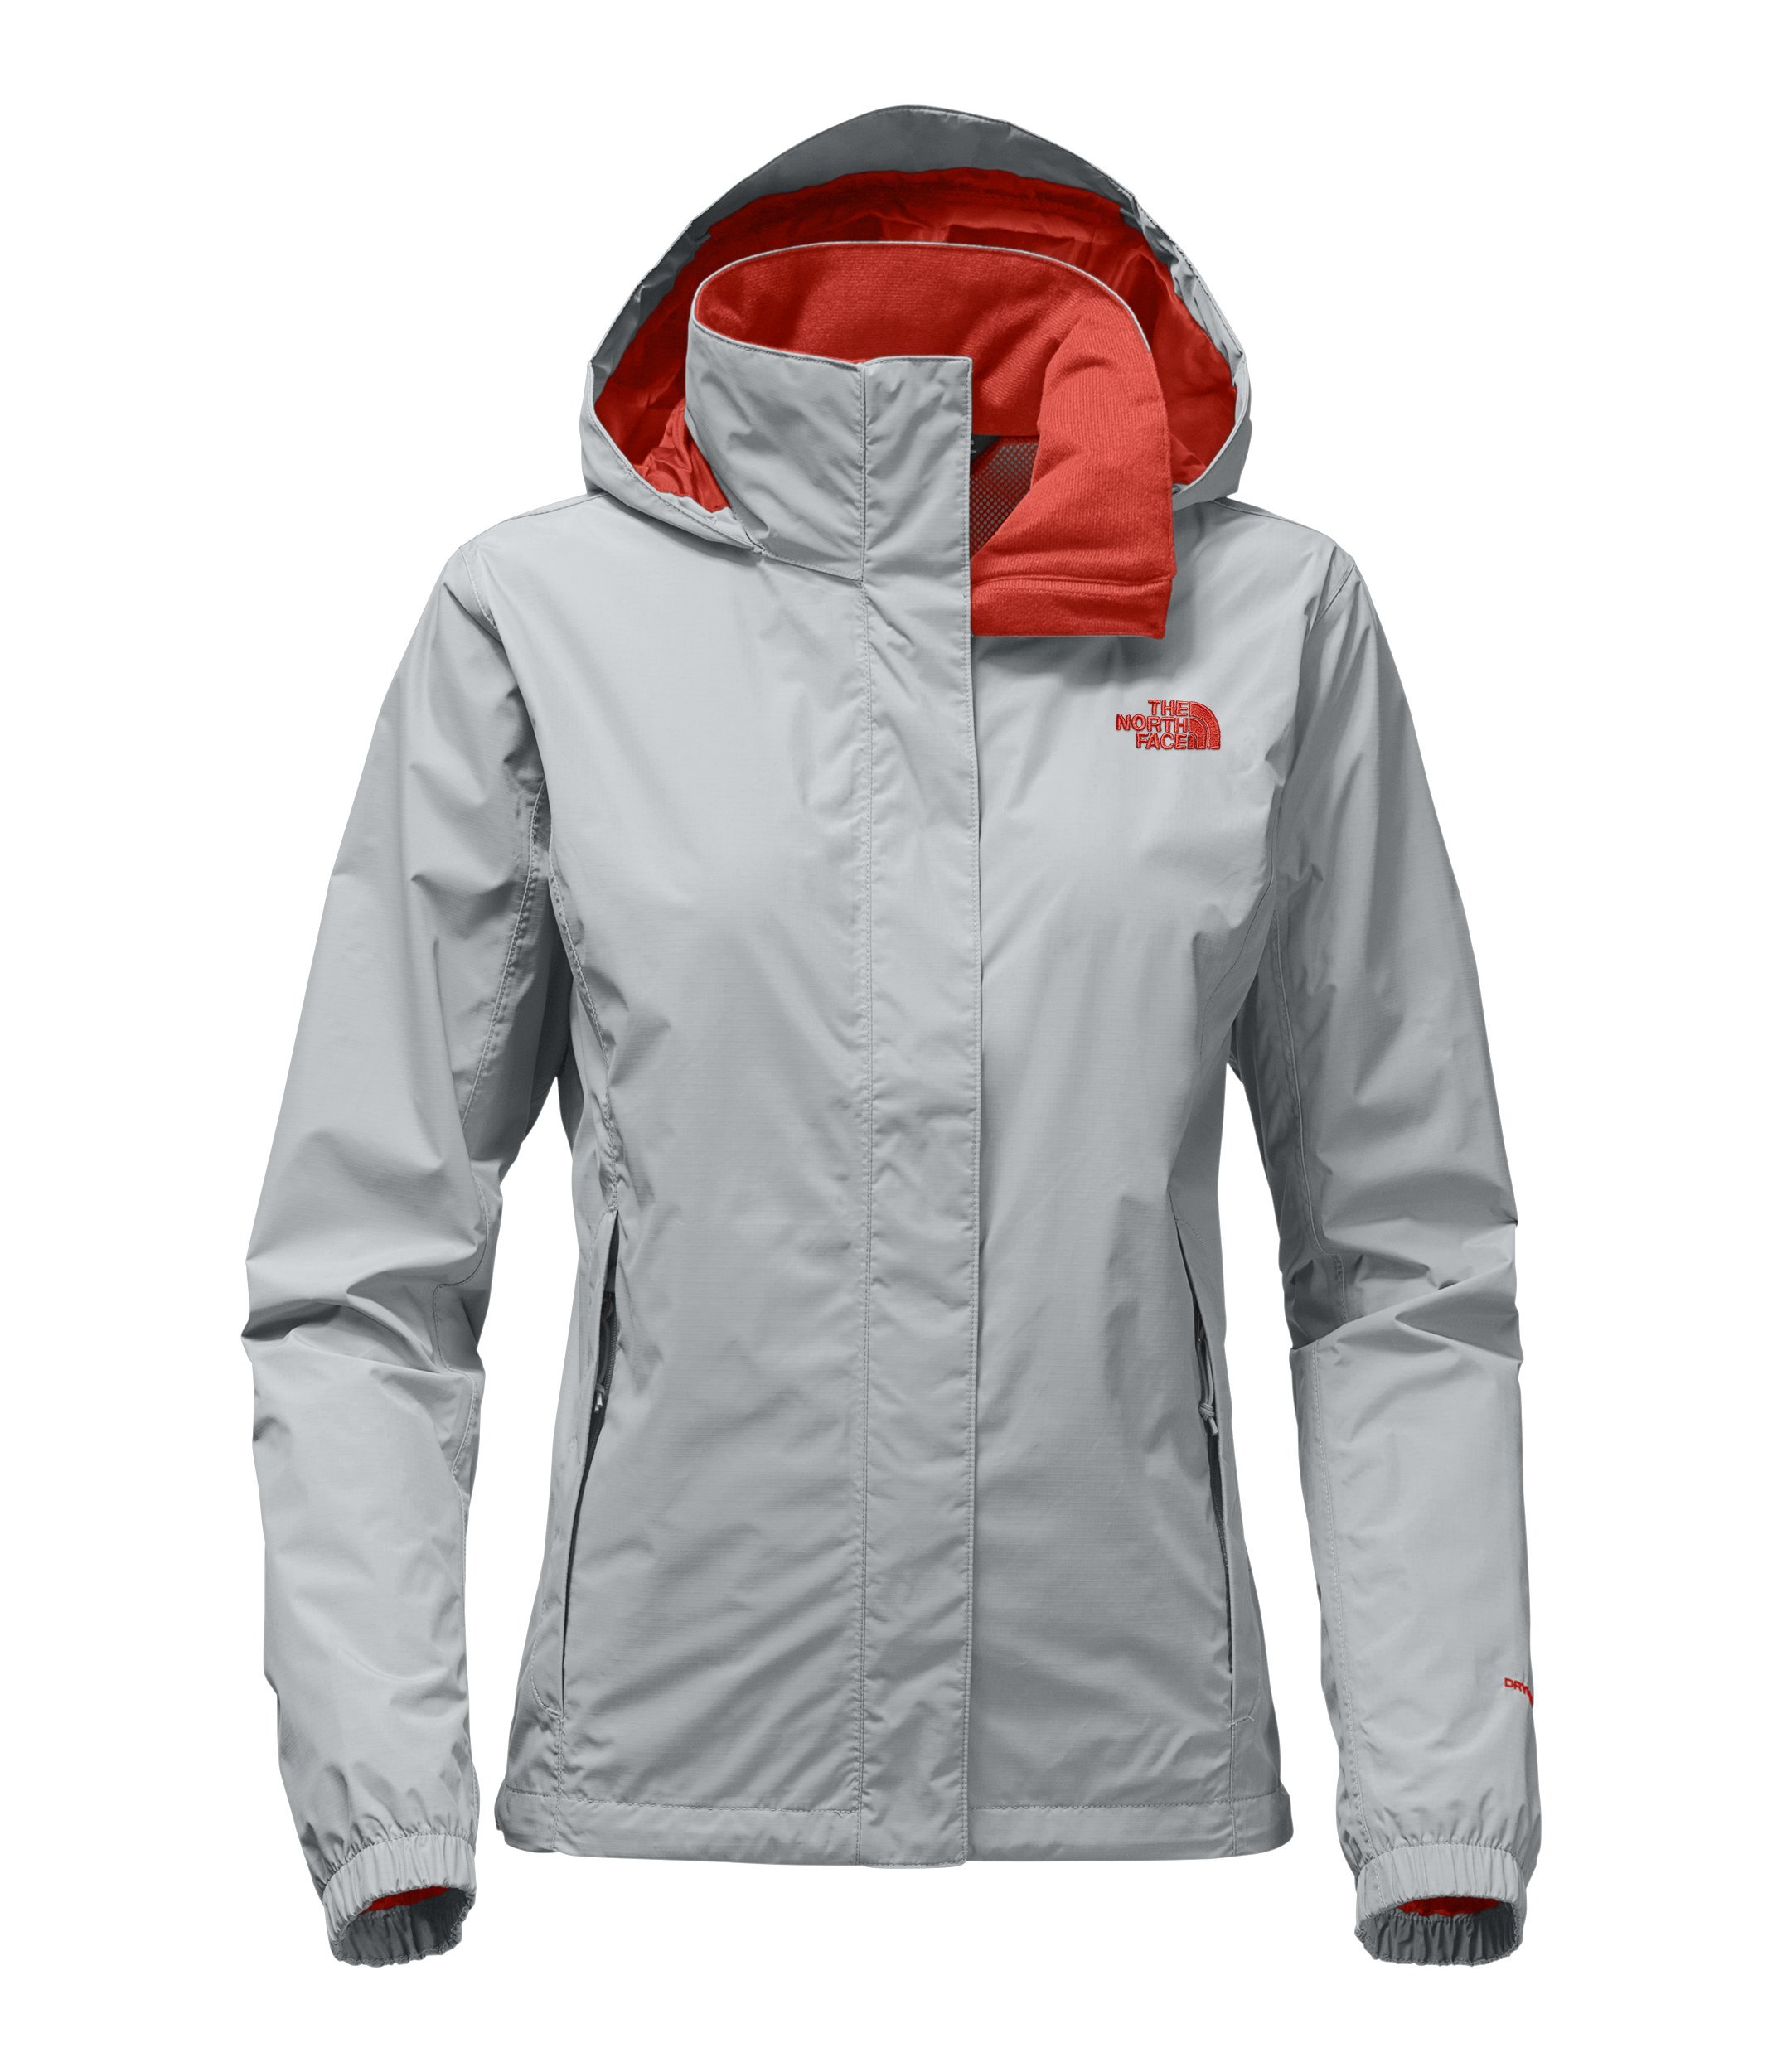 The North Face Womens Resolve 2 Jacket High Rise Grey and Fire Brick Red - XXL